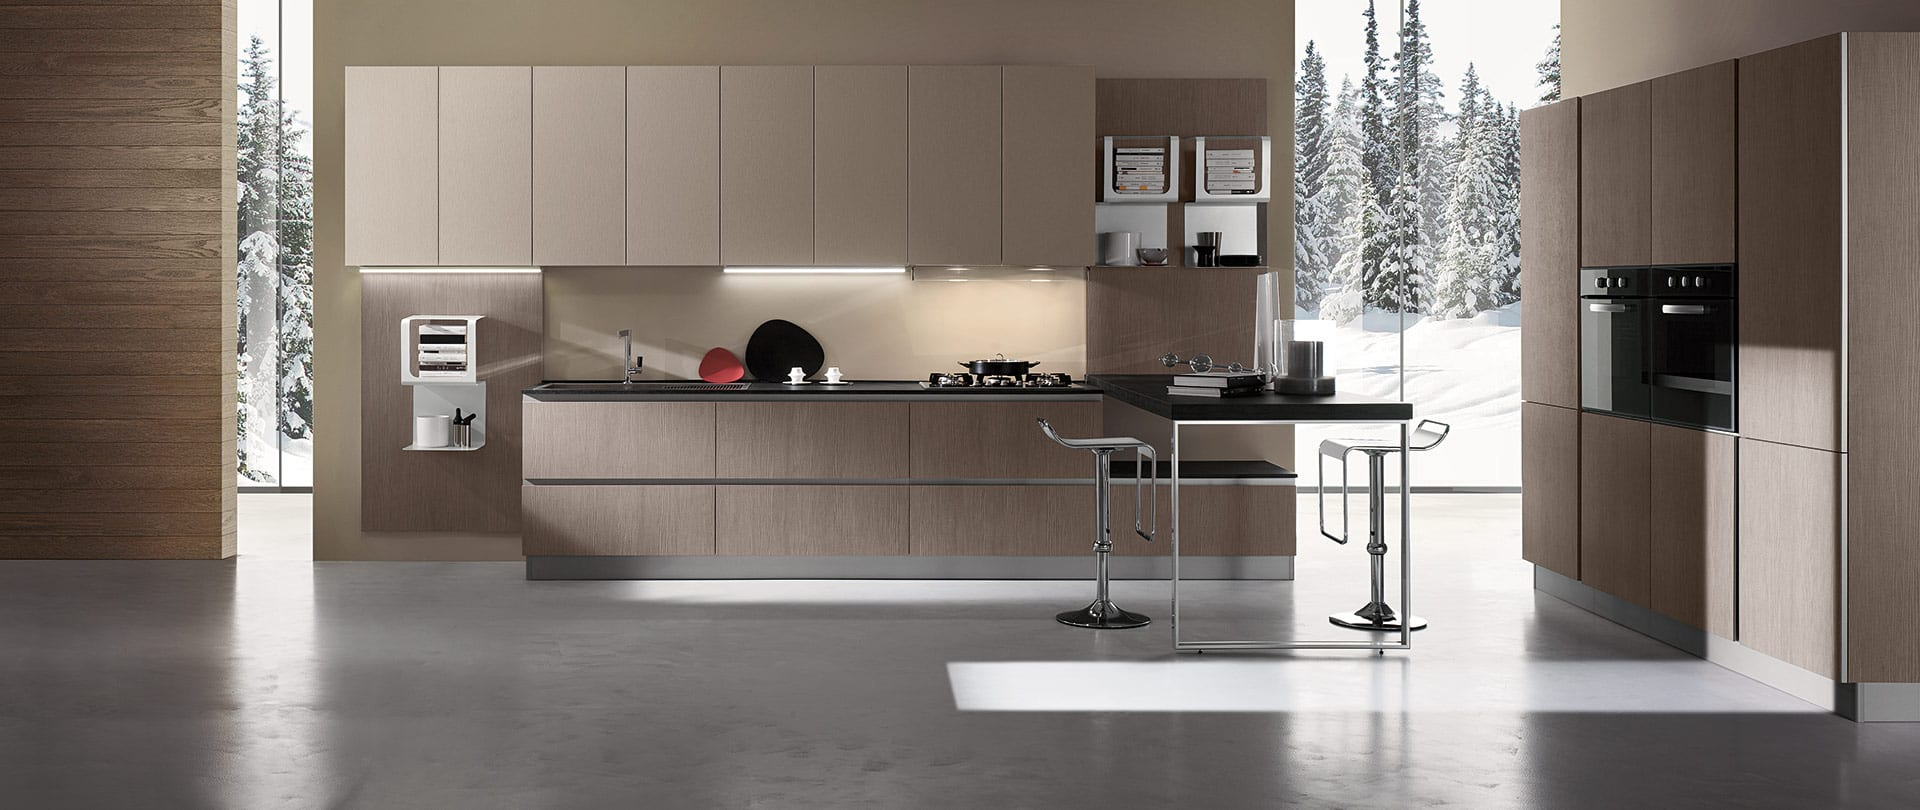 Contemporary kitchens. Stratos is our luxury line